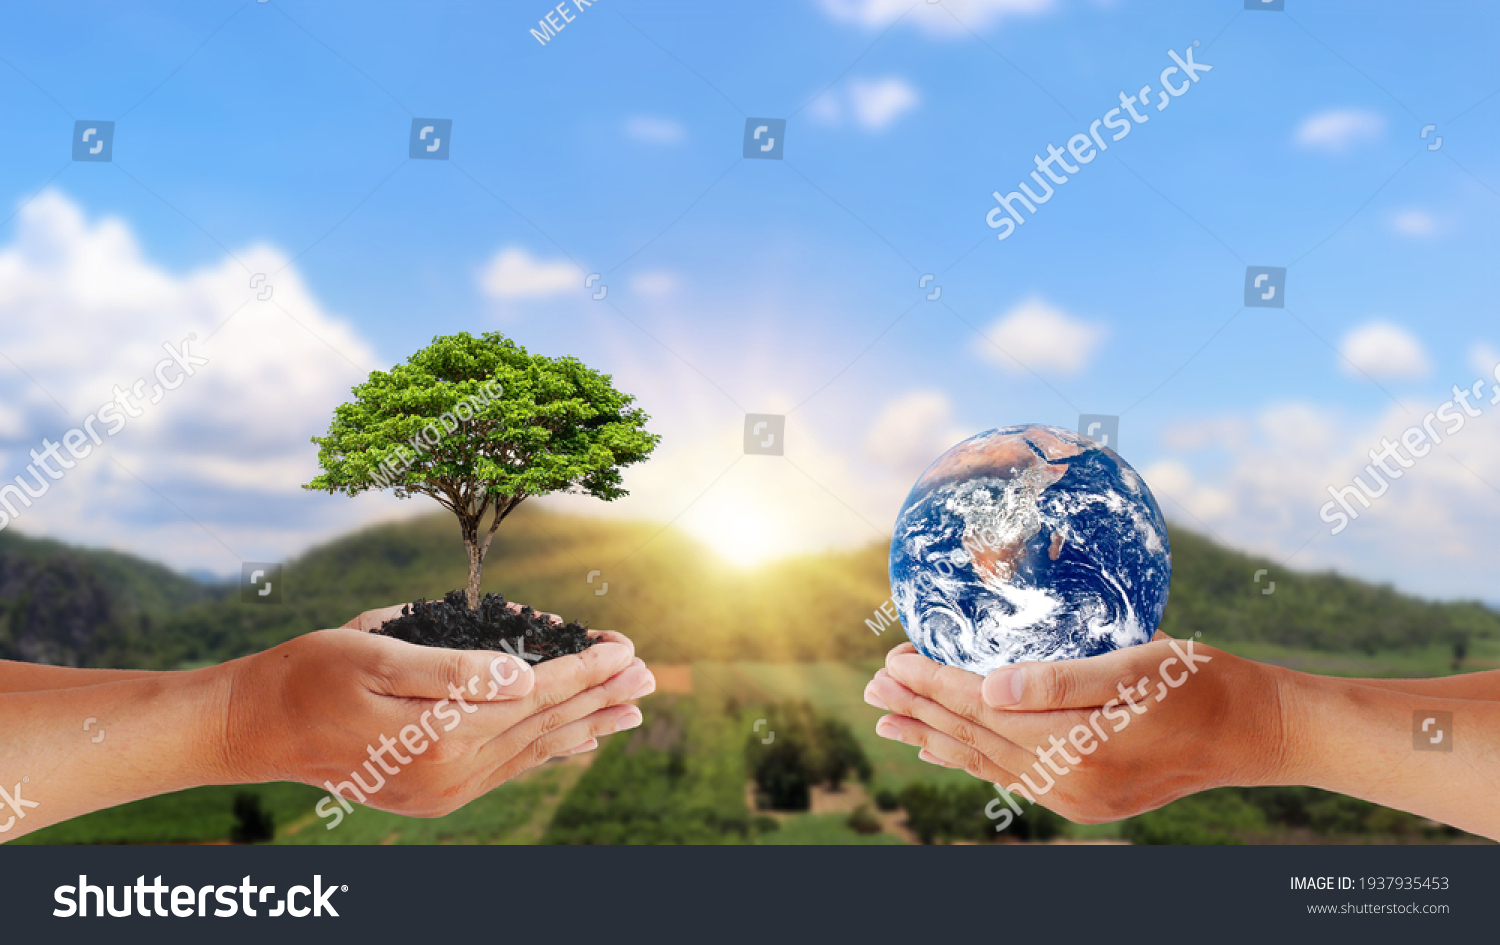 Exchange of planets in the hands of humans with young plants in the hands of humans, the concept of Earth Day and Conservation of the Environment. Elements of this image are decorated by NASA. #1937935453